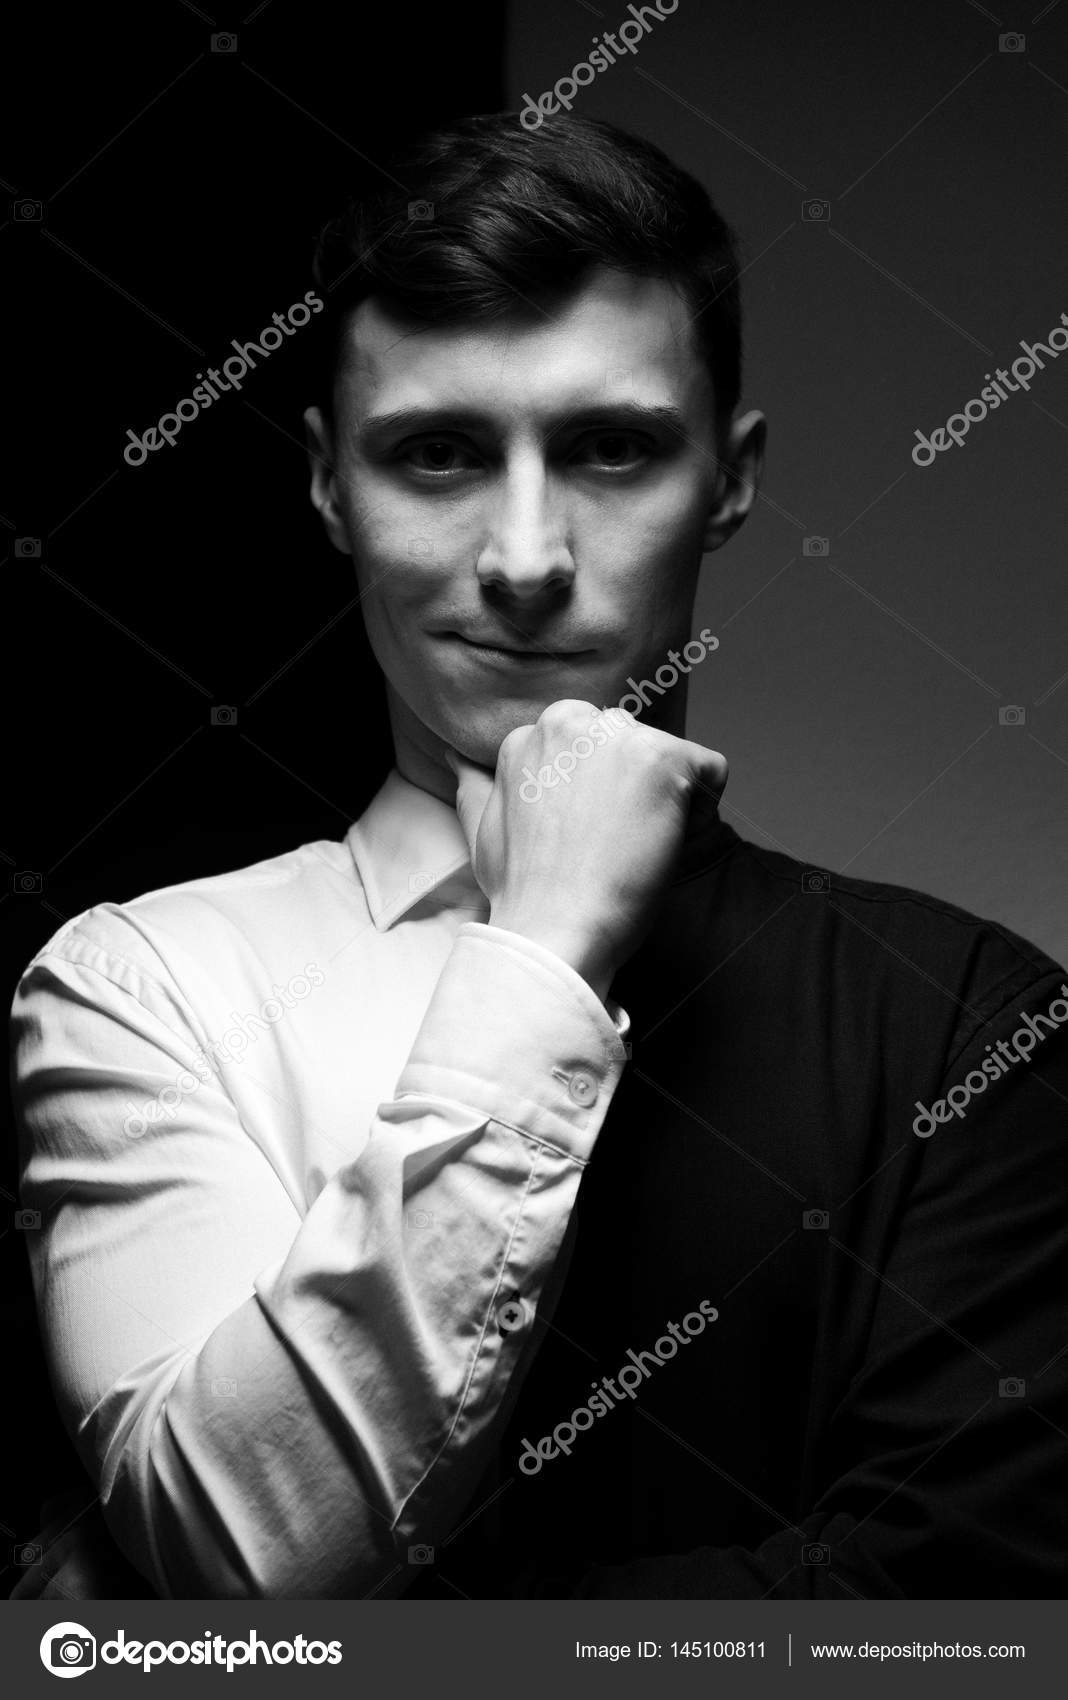 Low key portrait of a man in different shirts in black and white photo by pogrig001gmail com